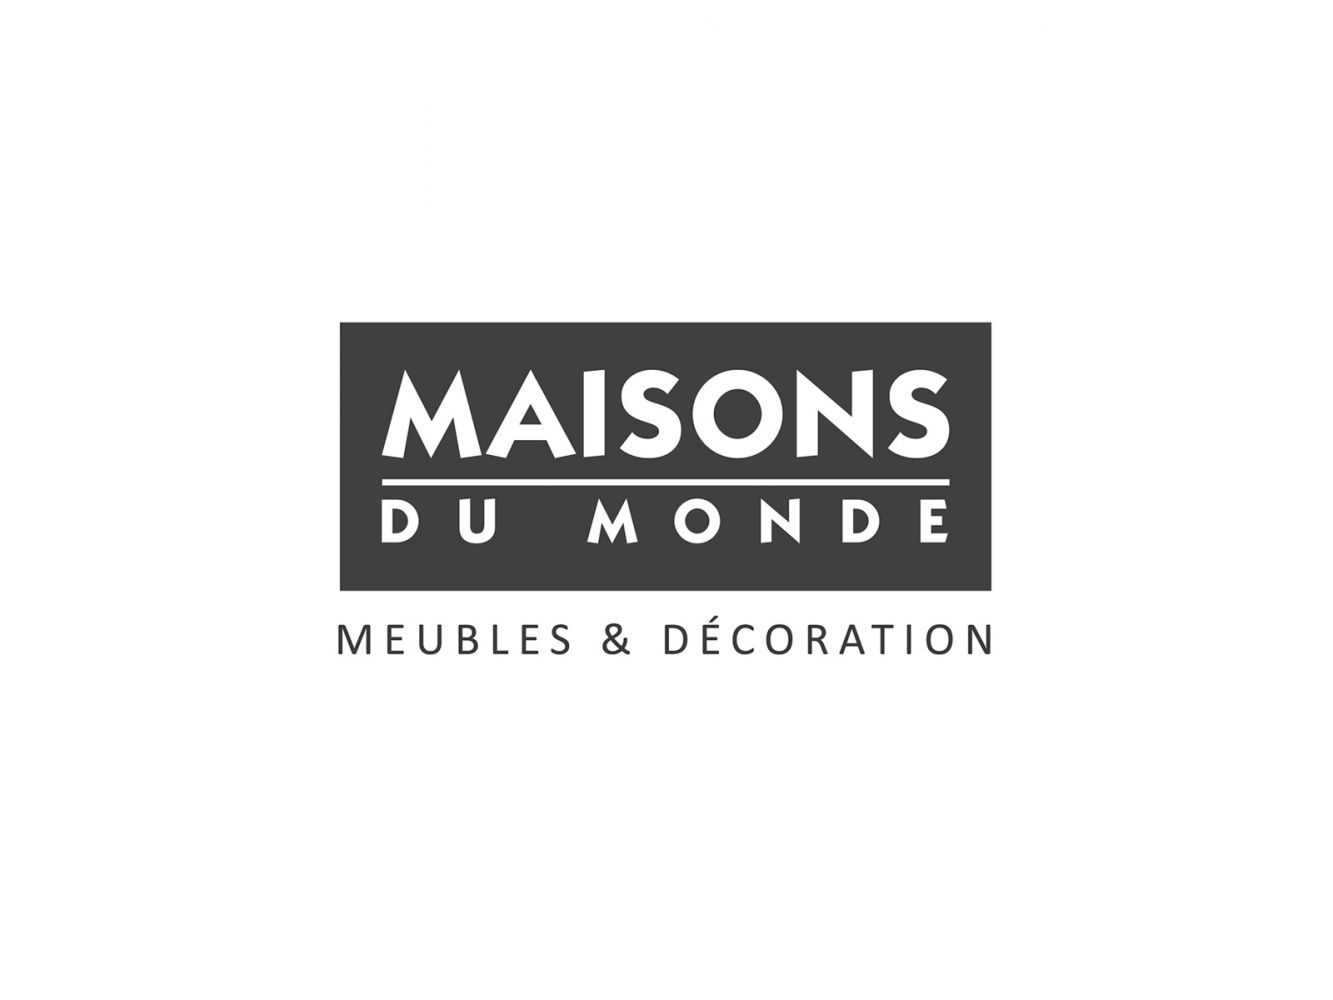 maisons du monde meuble et d coration marseille mobilier design contemporain mobilier. Black Bedroom Furniture Sets. Home Design Ideas